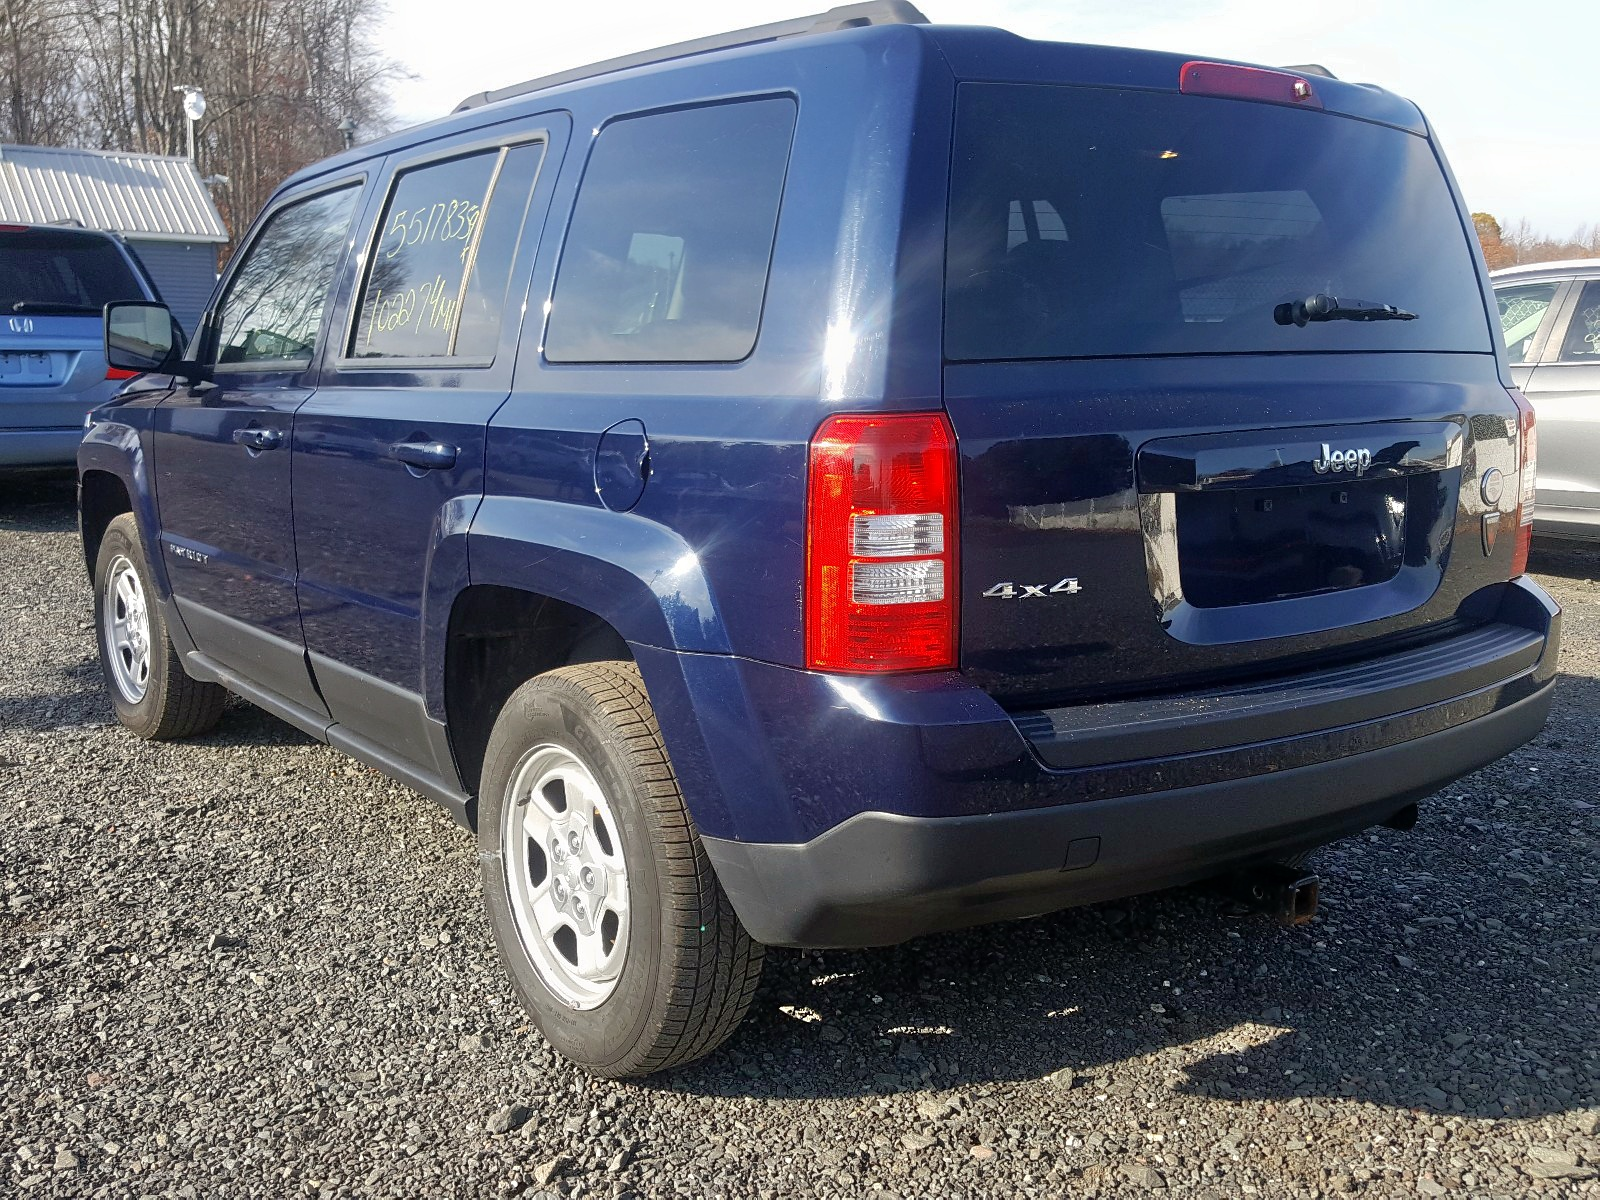 2015 Jeep Patriot Sp 2.4L [Angle] View